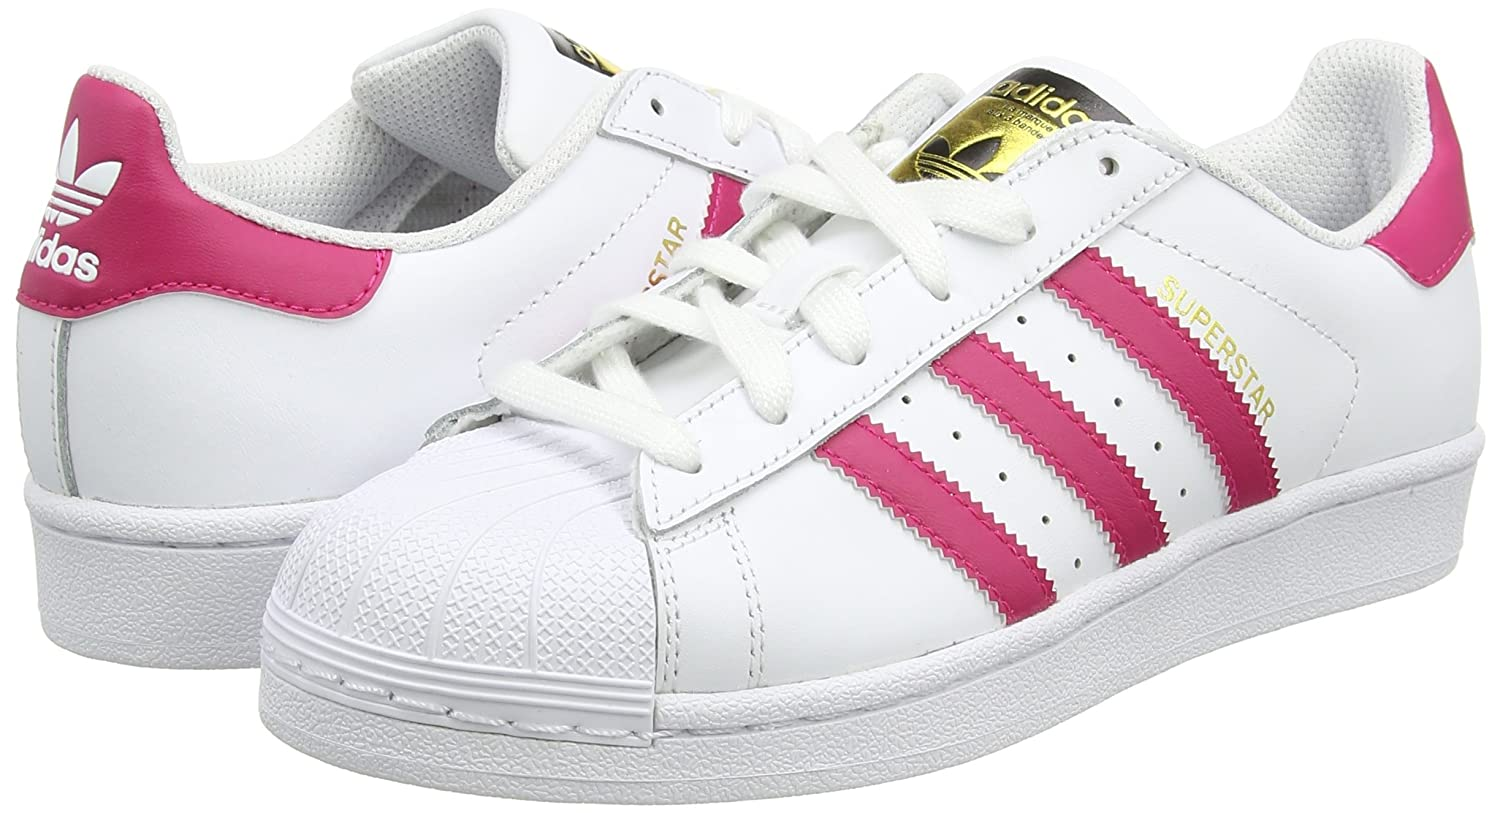 adidas Superstar Foundation, Unisex Kids\u0027 Low-Top Sneakers: Amazon.co.uk:  Shoes \u0026 Bags